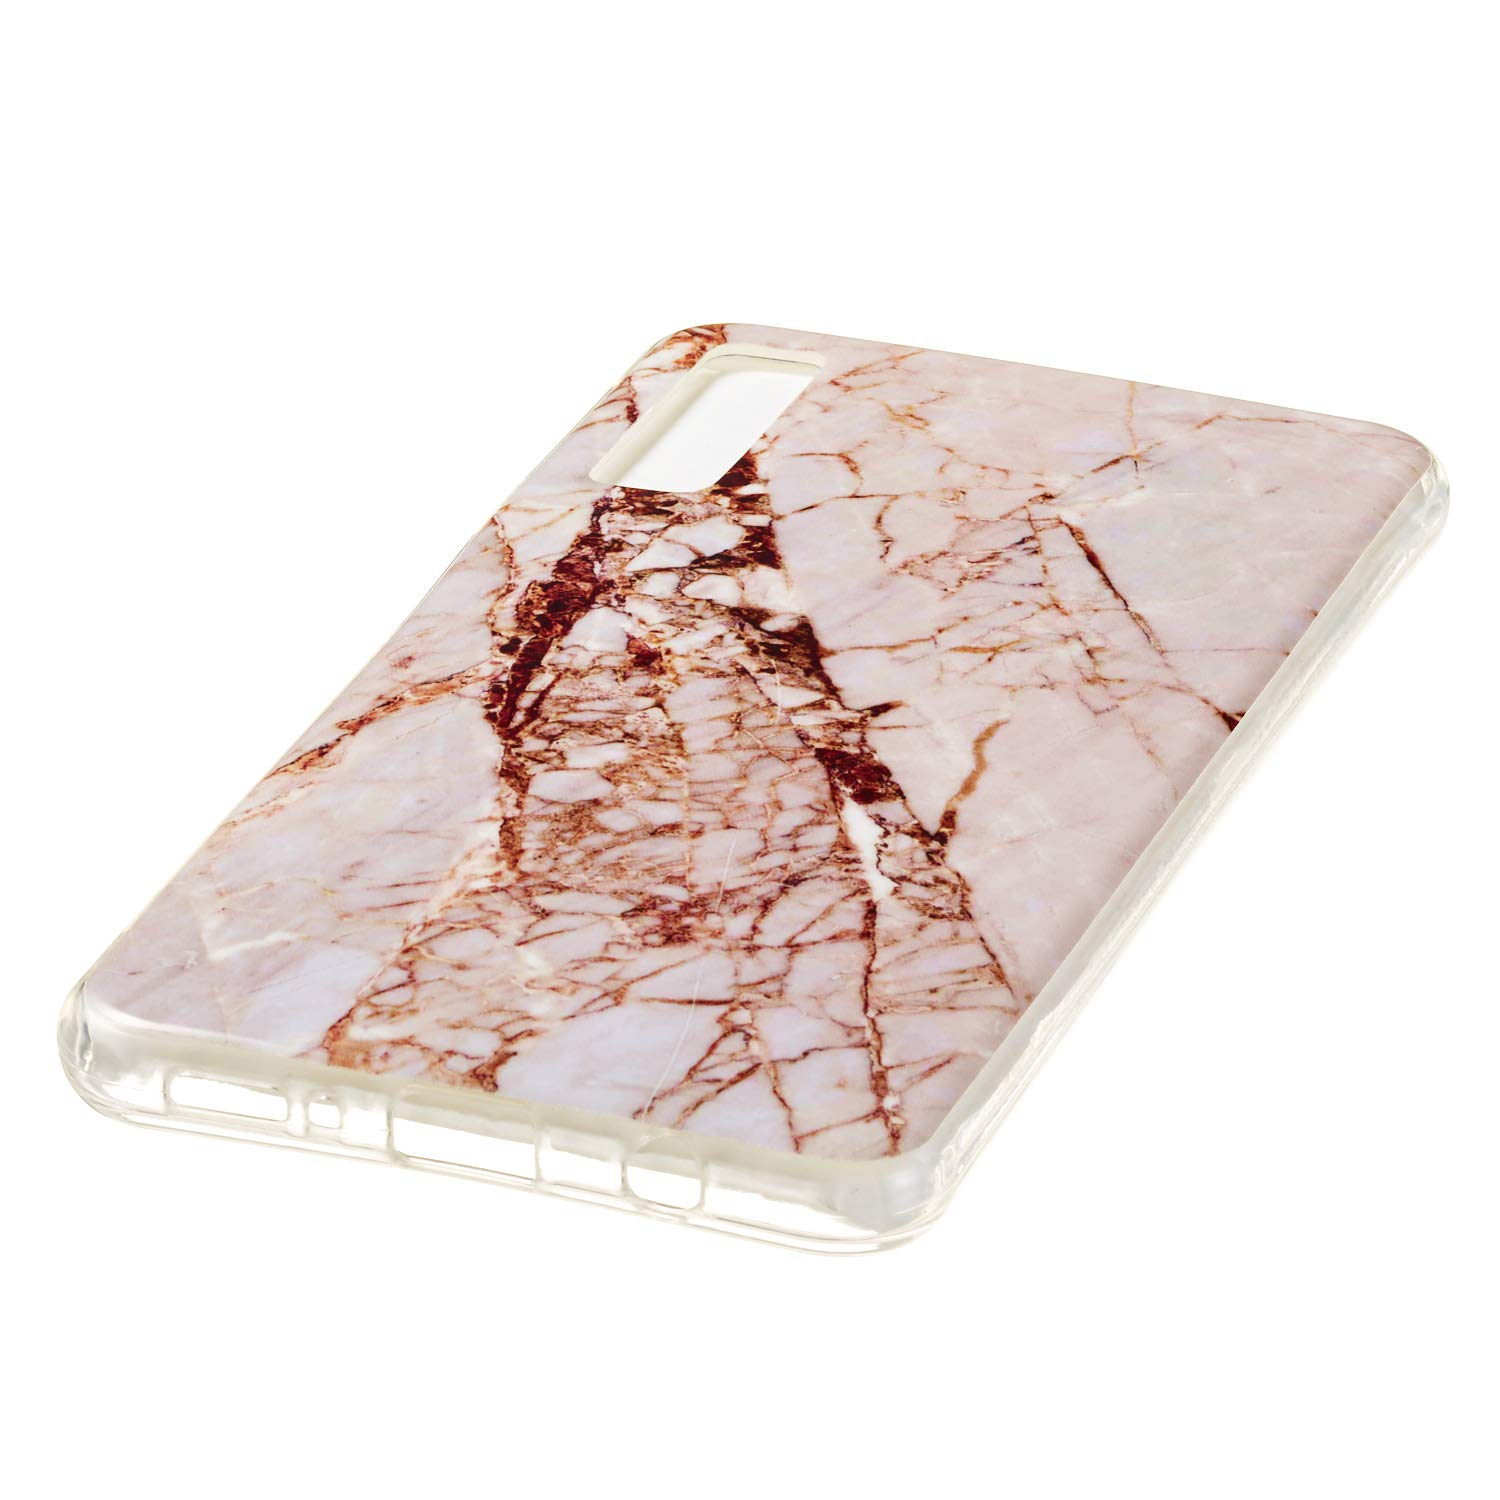 for Samsung Galaxy A7 2018 (A750) Marble Case with Screen Protector,Unique Pattern Design Skin Ultra Thin Slim Fit Soft Gel Silicone Case,QFFUN Shockproof Anti-Scratch Protective Back Cover - White by QFFUN (Image #4)